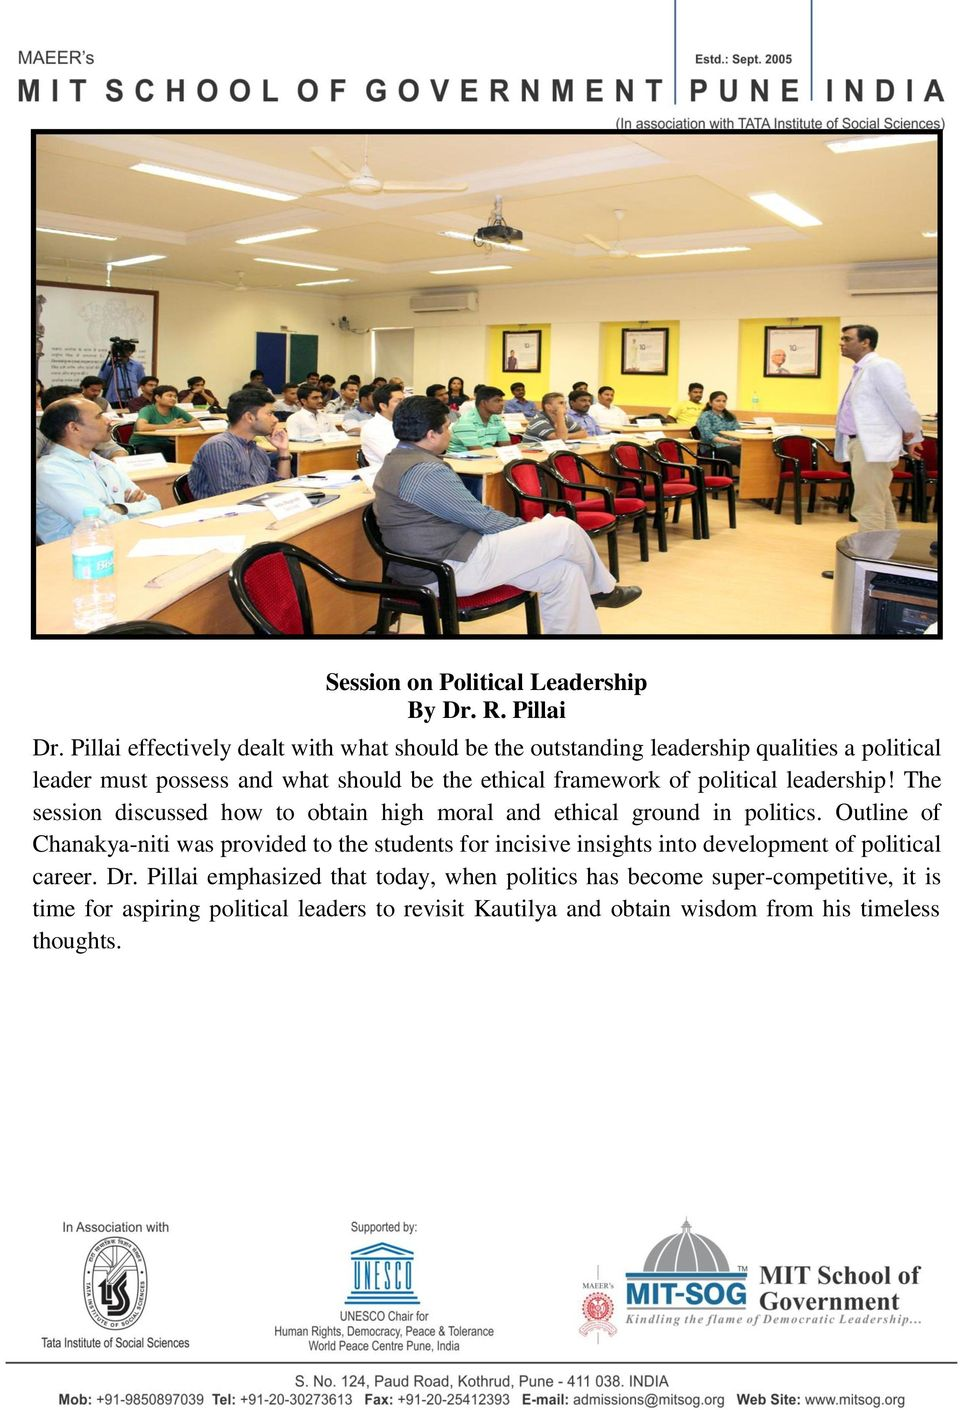 framework of political leadership! The session discussed how to obtain high moral and ethical ground in politics.